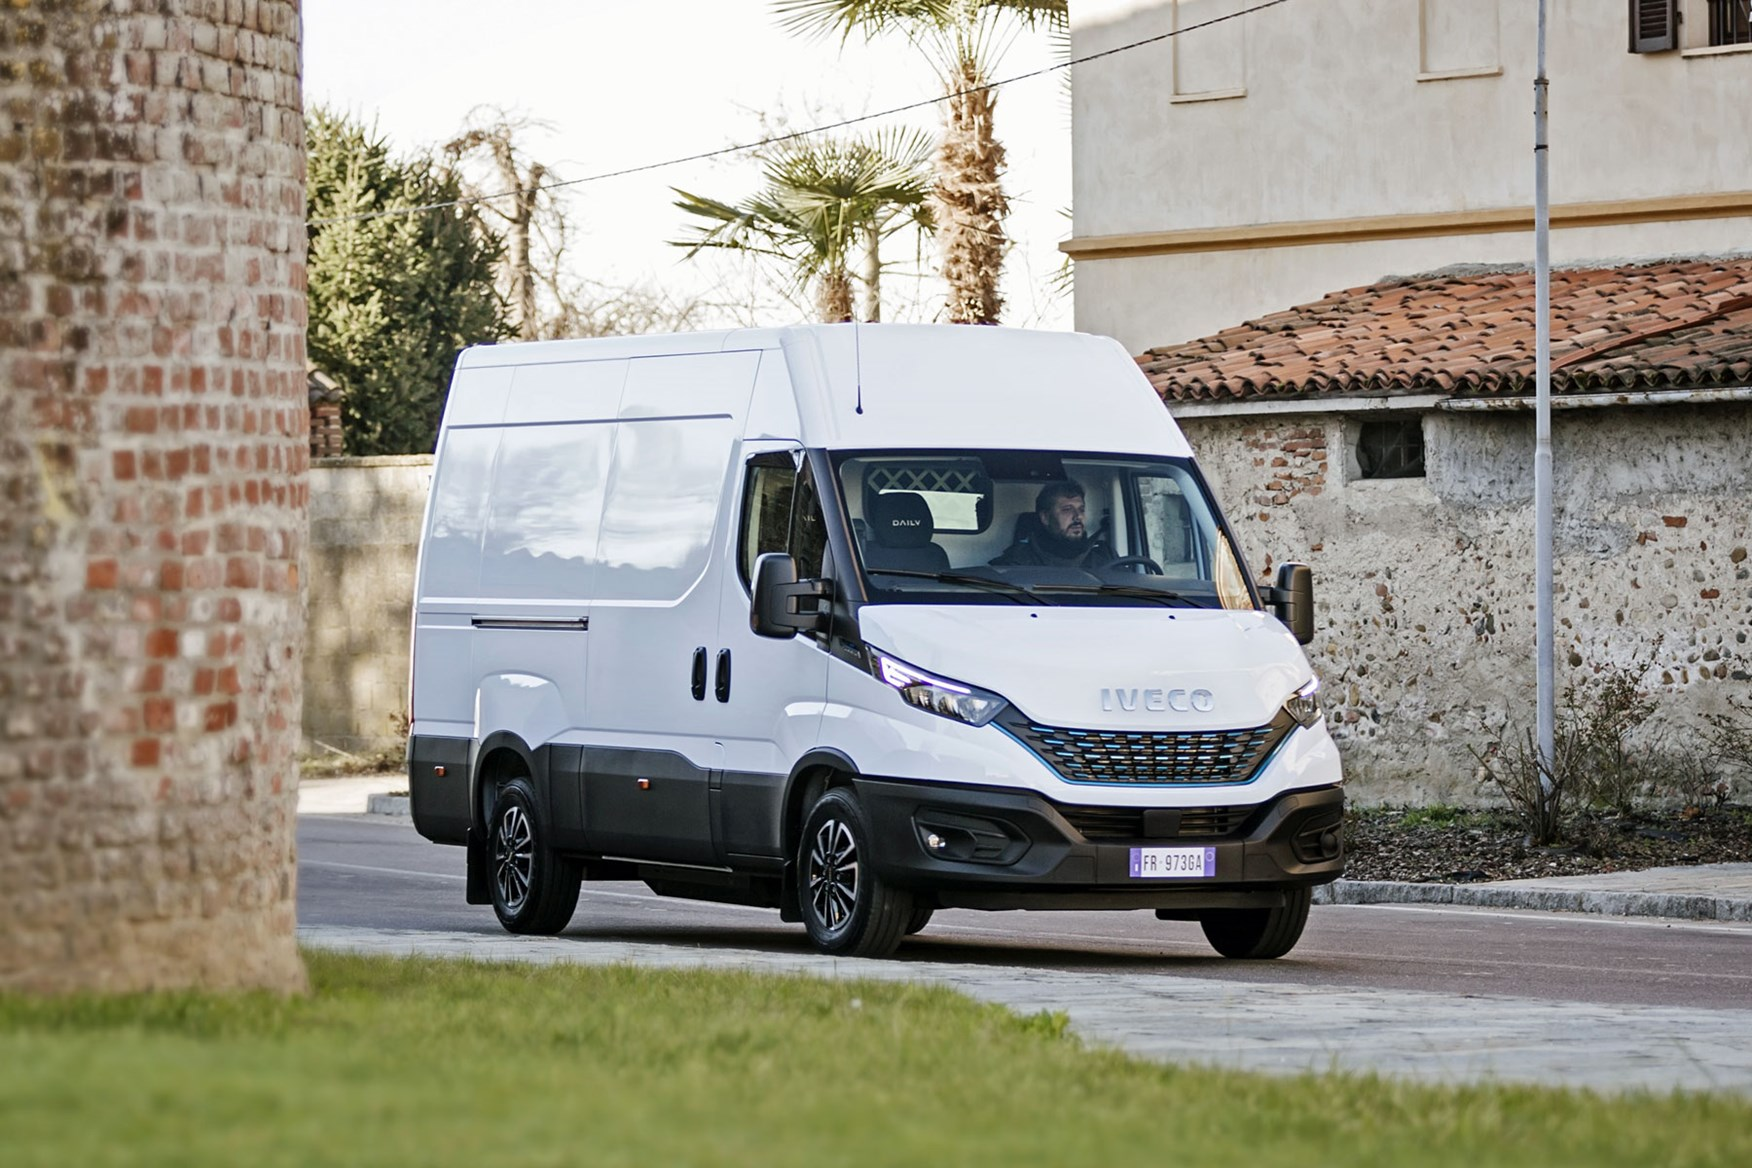 Iveco Daily 2019 - driving, front view, white